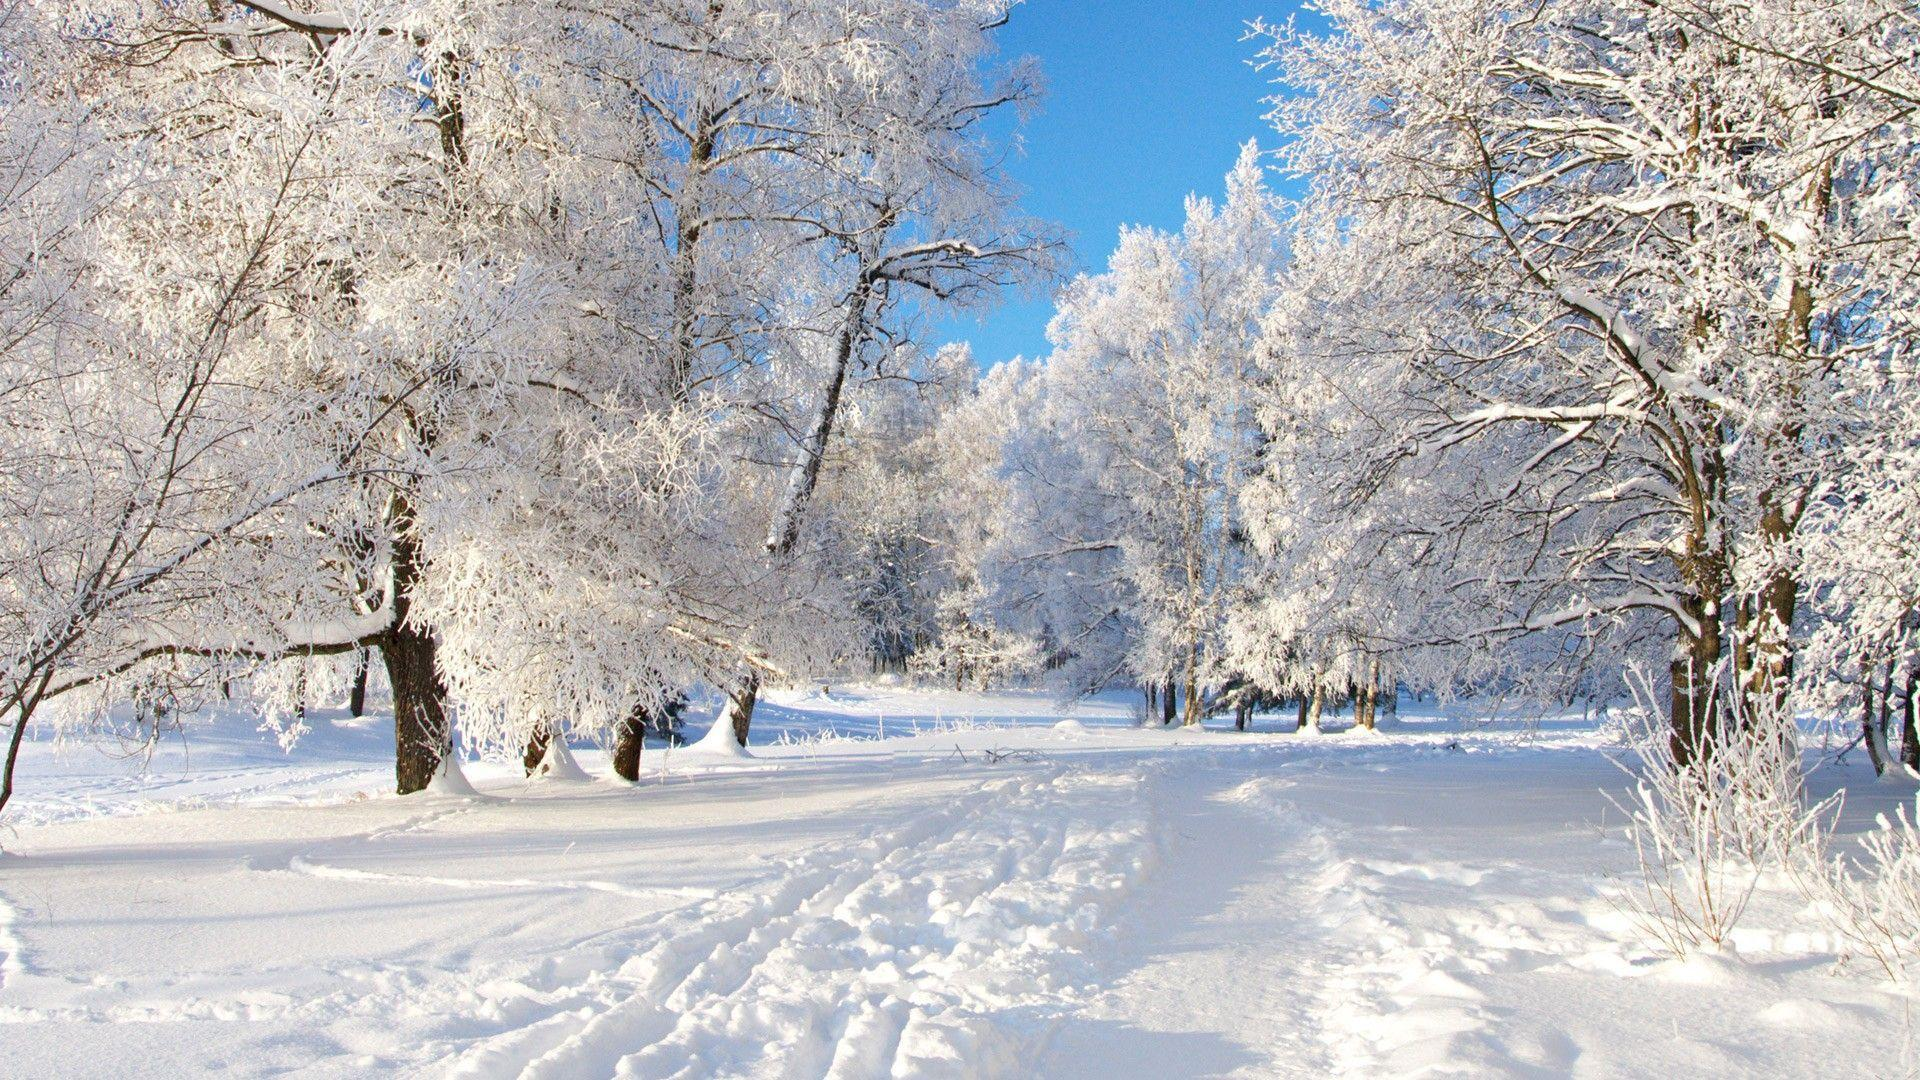 Winter Snow Backgrounds 1920x1080